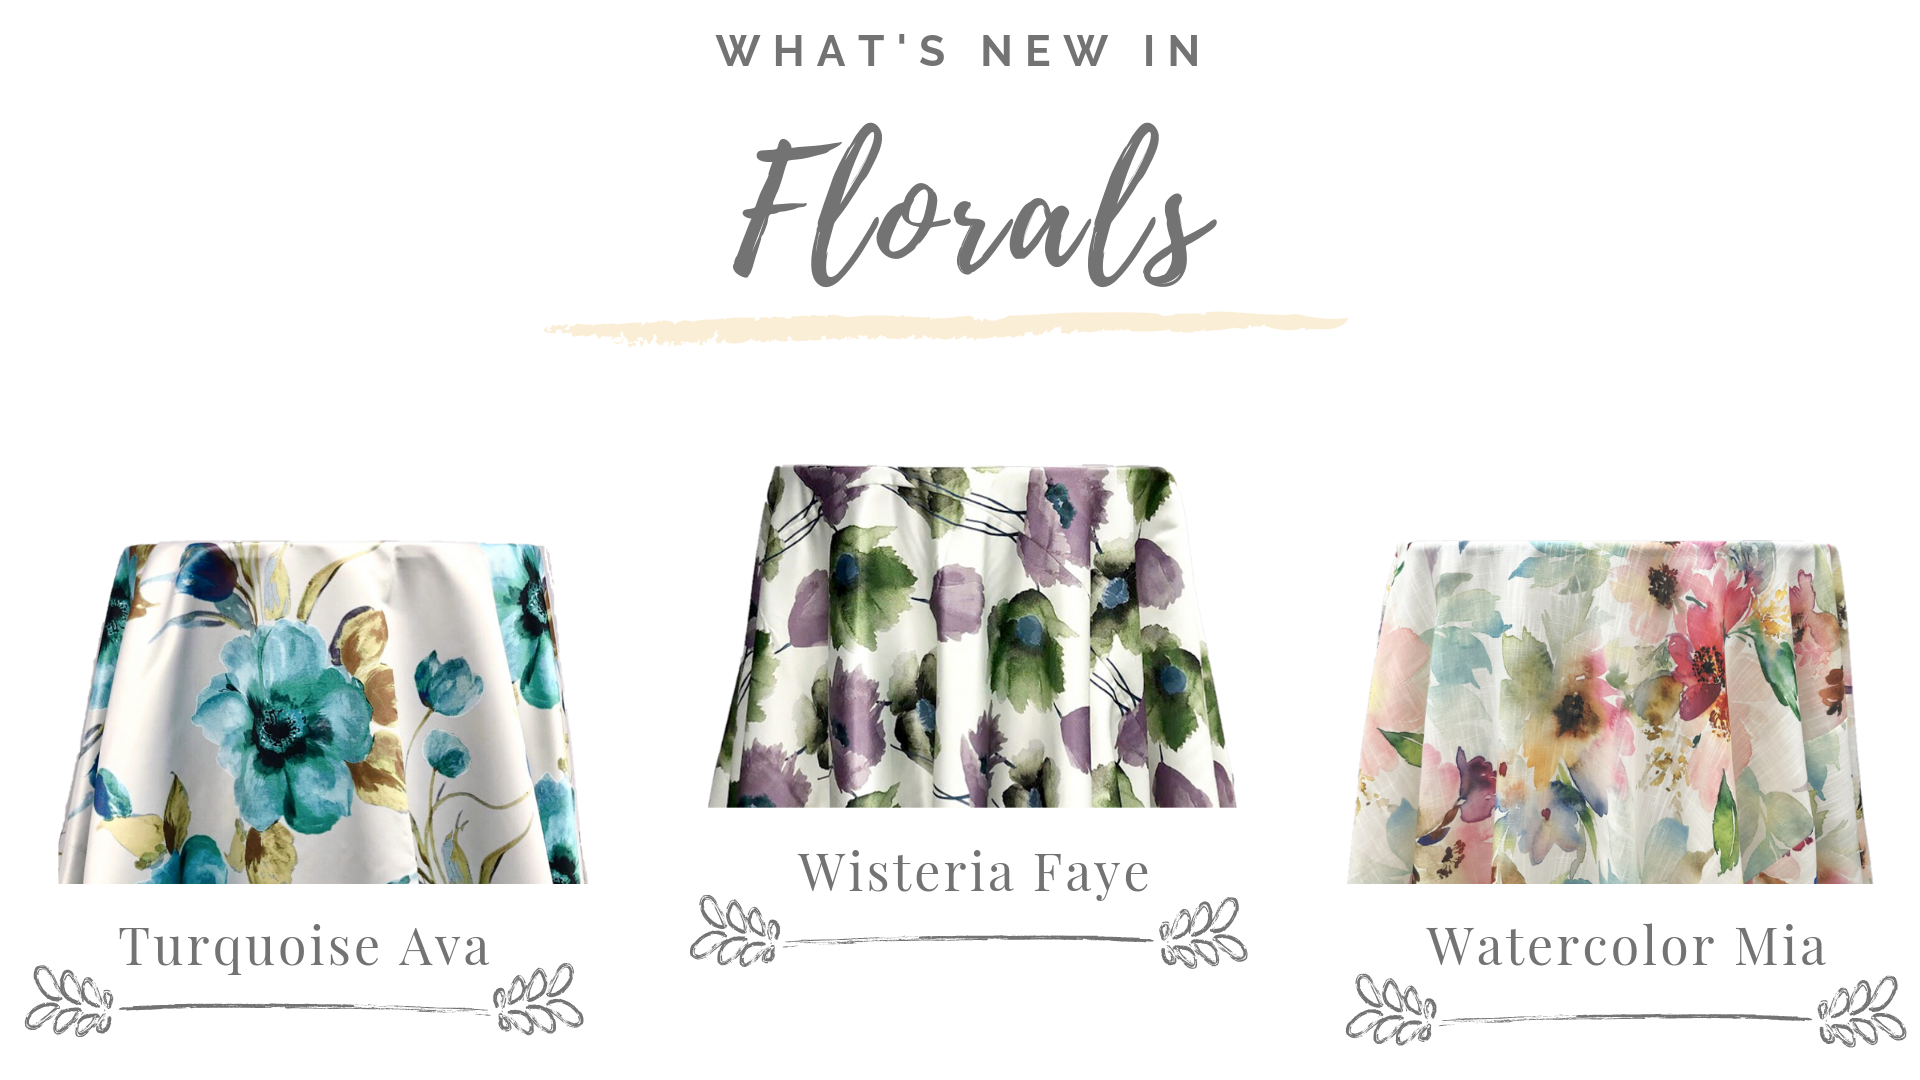 What's New In Florals